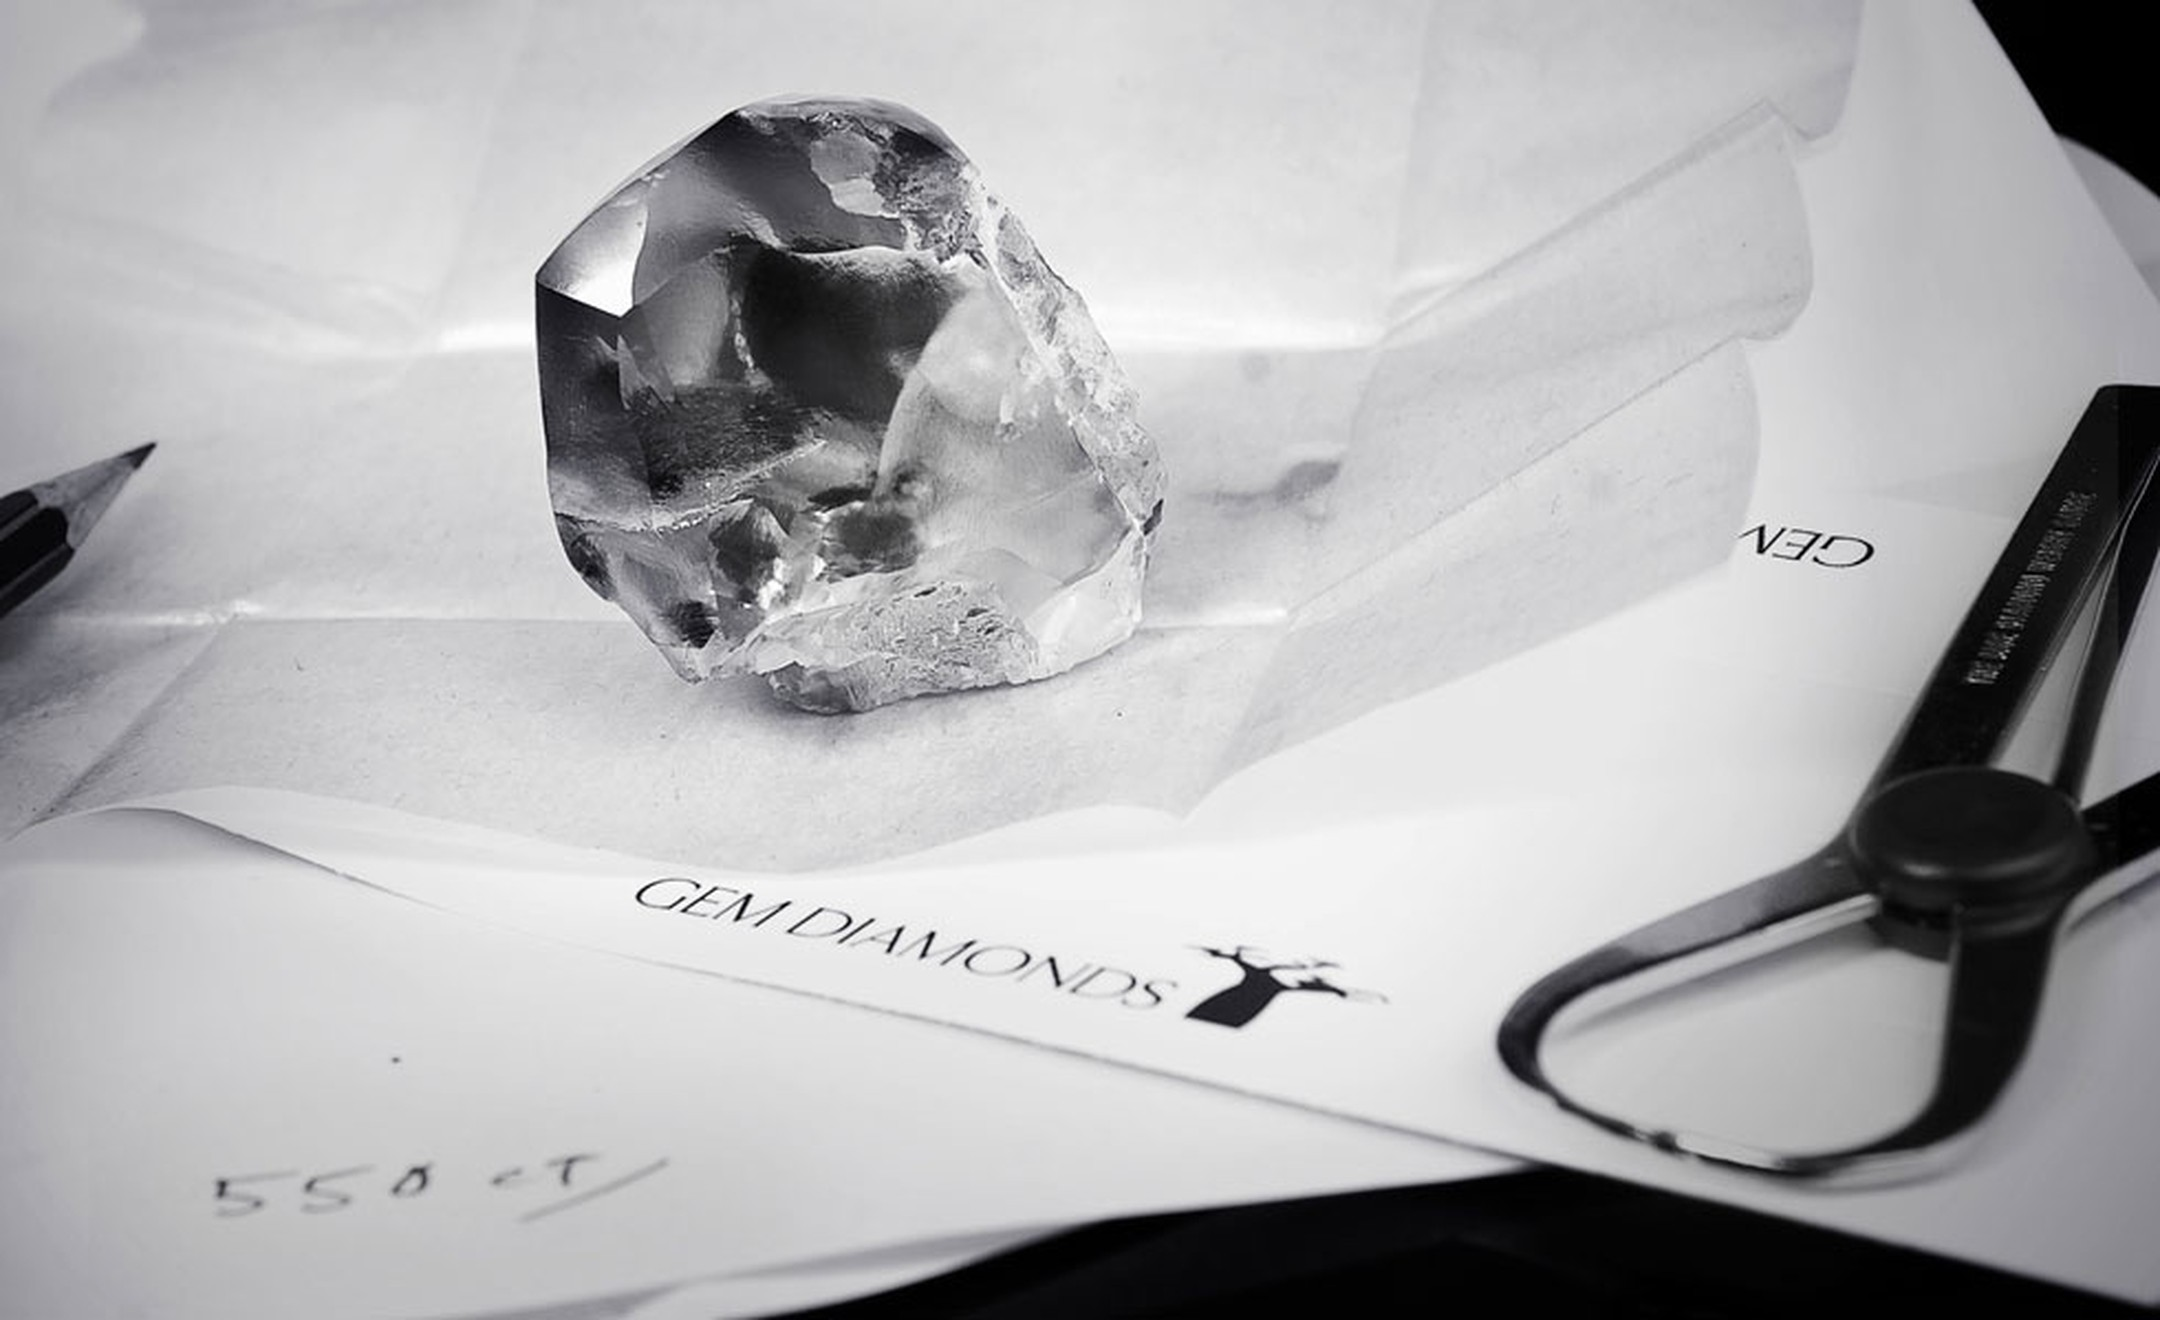 The Letseng Star 550 carat diamond shown to scale.